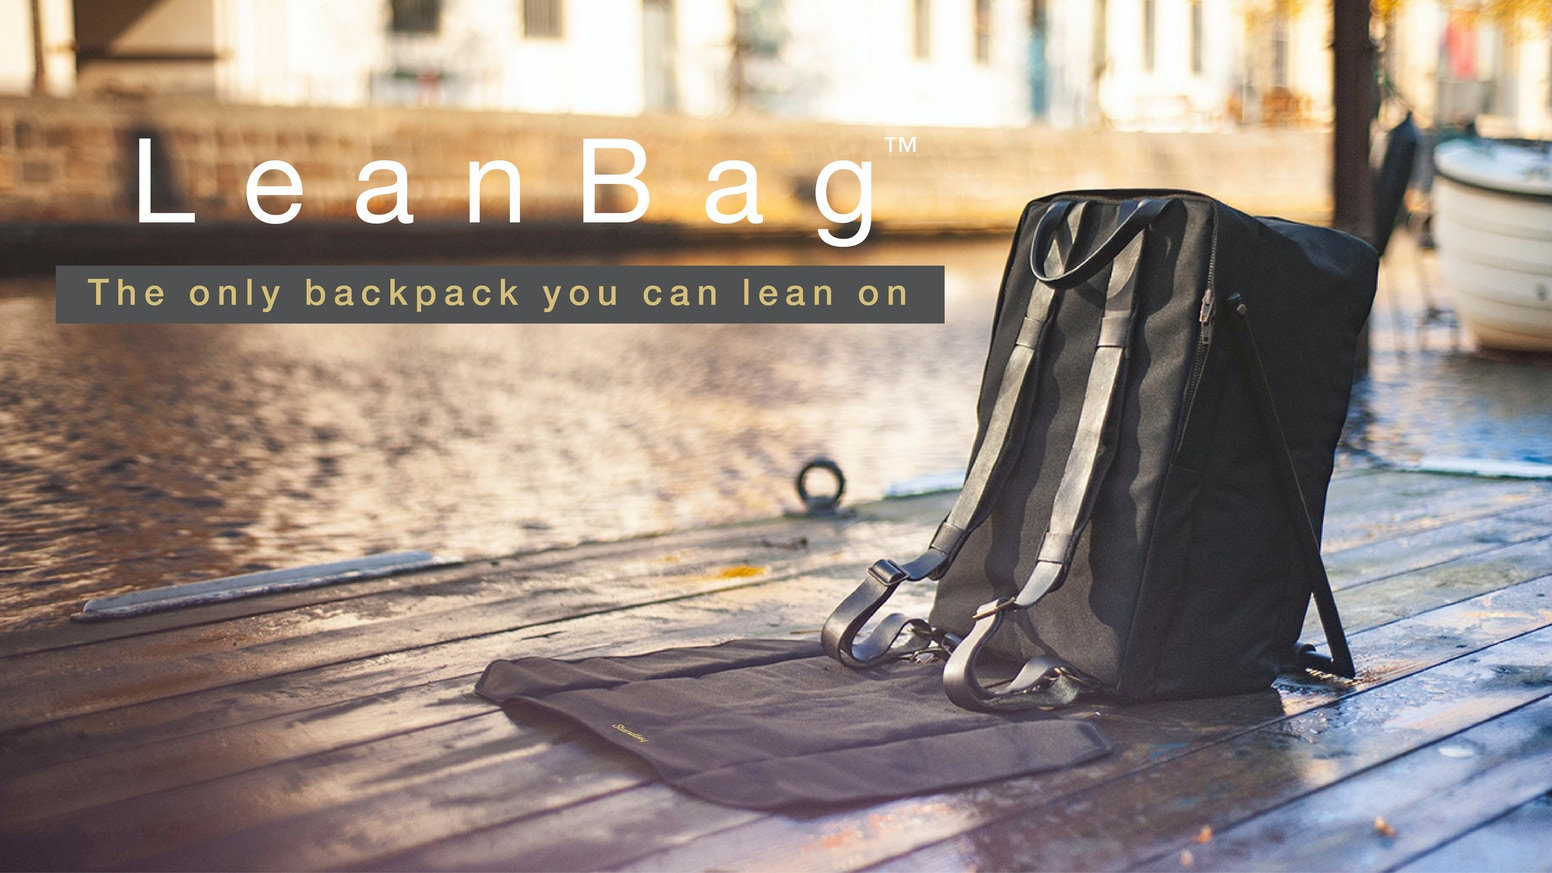 LeanBag™ - The World's First Backpack You Can Lean On by